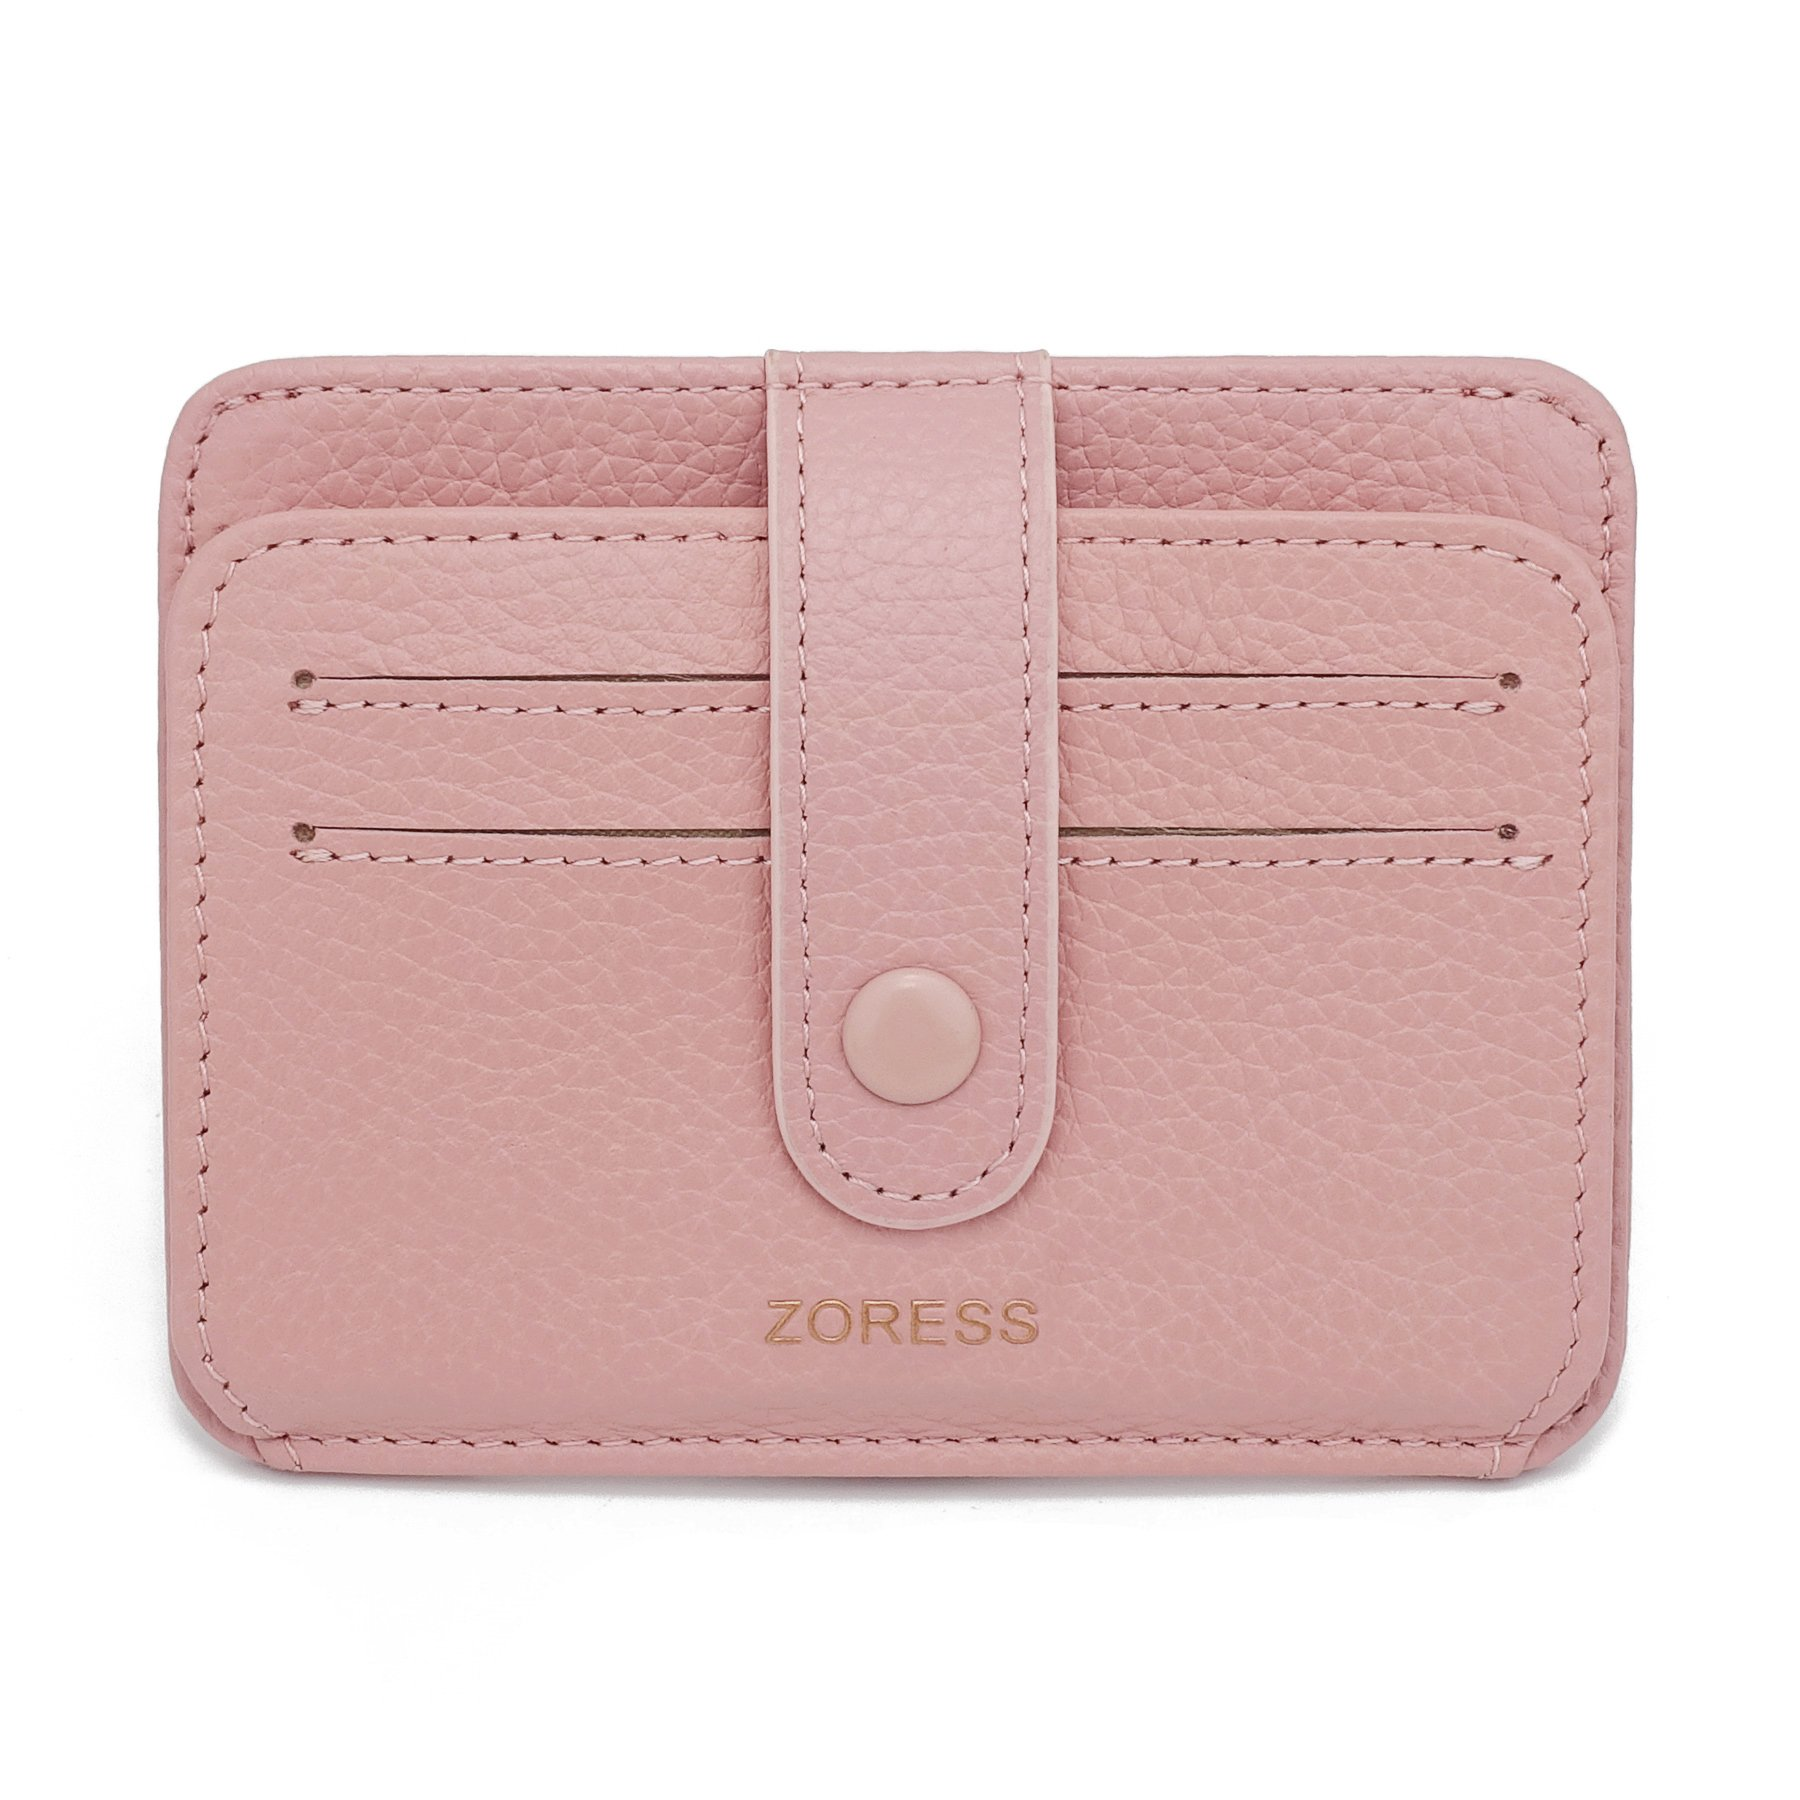 ZORESS Womens Leather RFID Blocking Slim Credit Card Case Holder Travel Front Pocket Wallet(Pink) by ZORESS